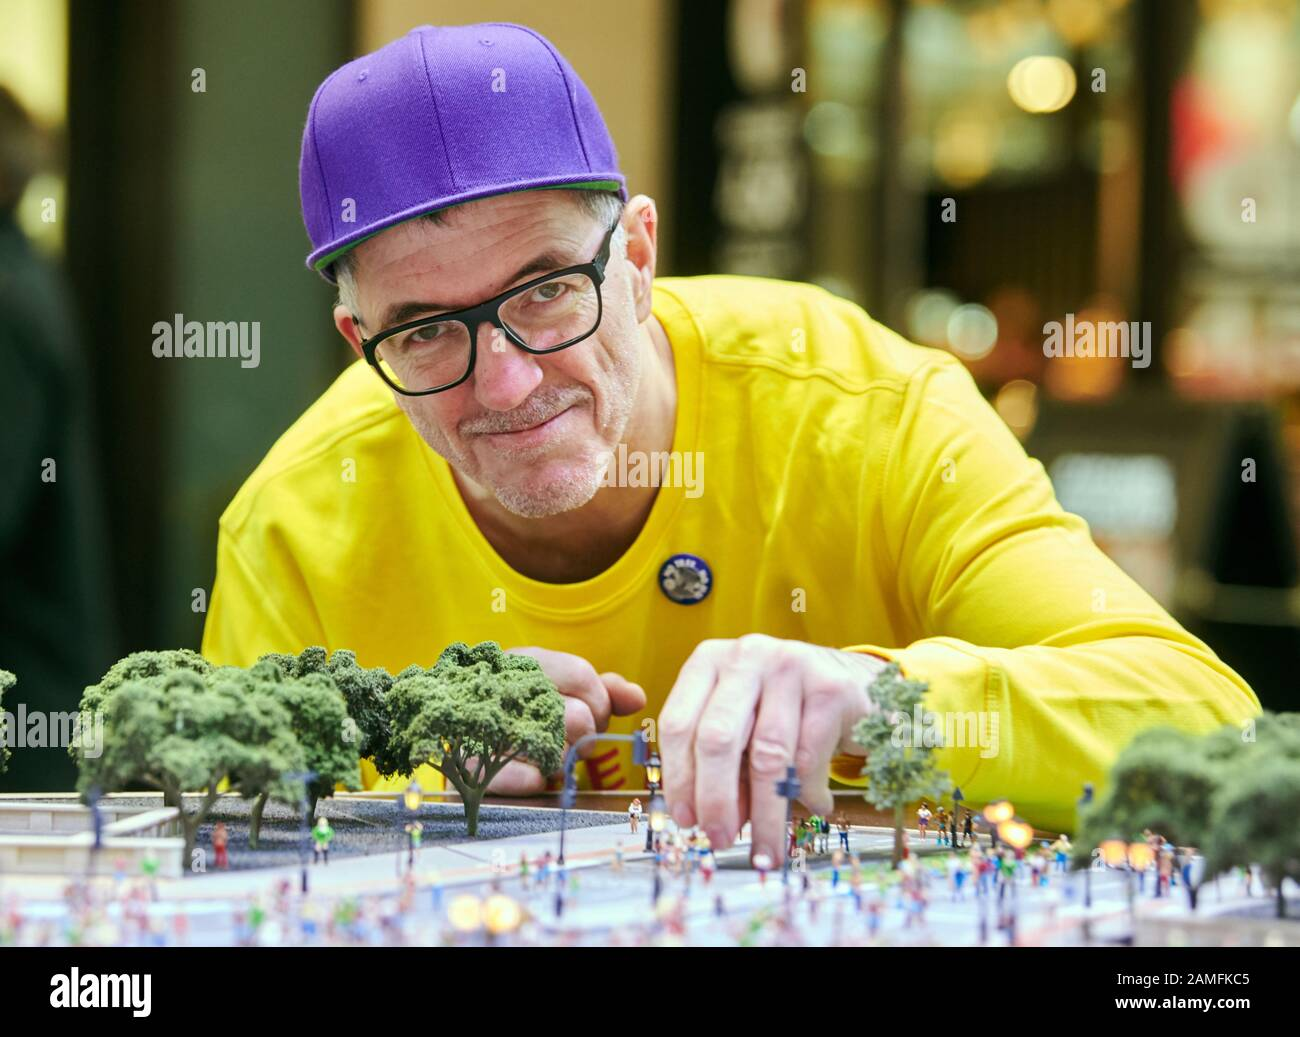 Berlin Germany 13th Jan 2020 Loveparade Founder Dr Motte Leans Over A Miniature Model Of The Loveparade He Presented His New Project At A Press Conference With The Purchase Of A Figure